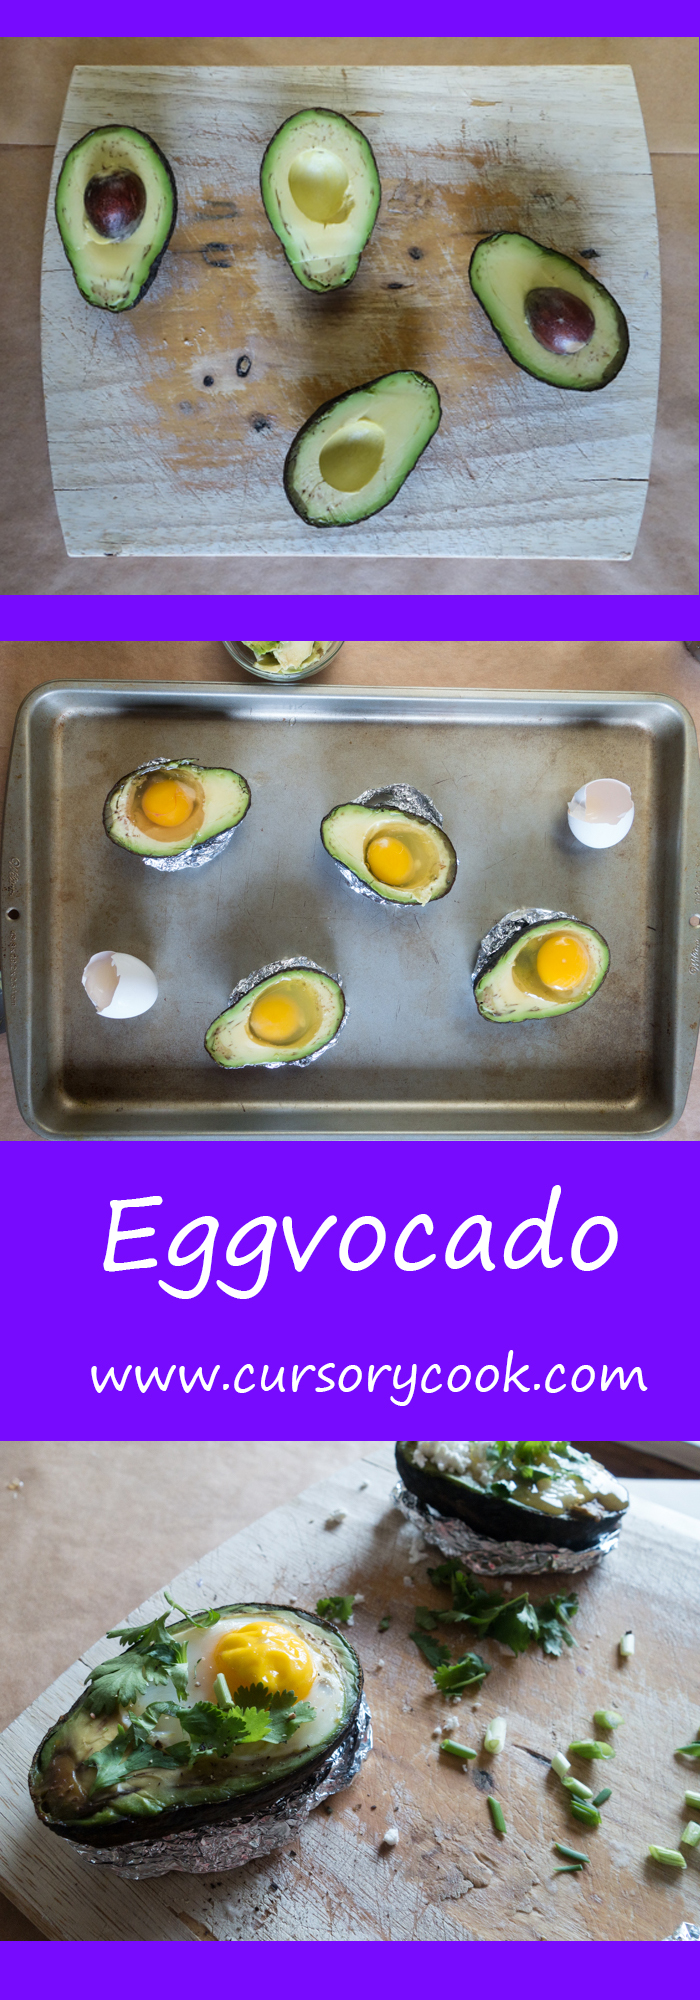 An egg baked in an avocado?! Best breakfast ever.